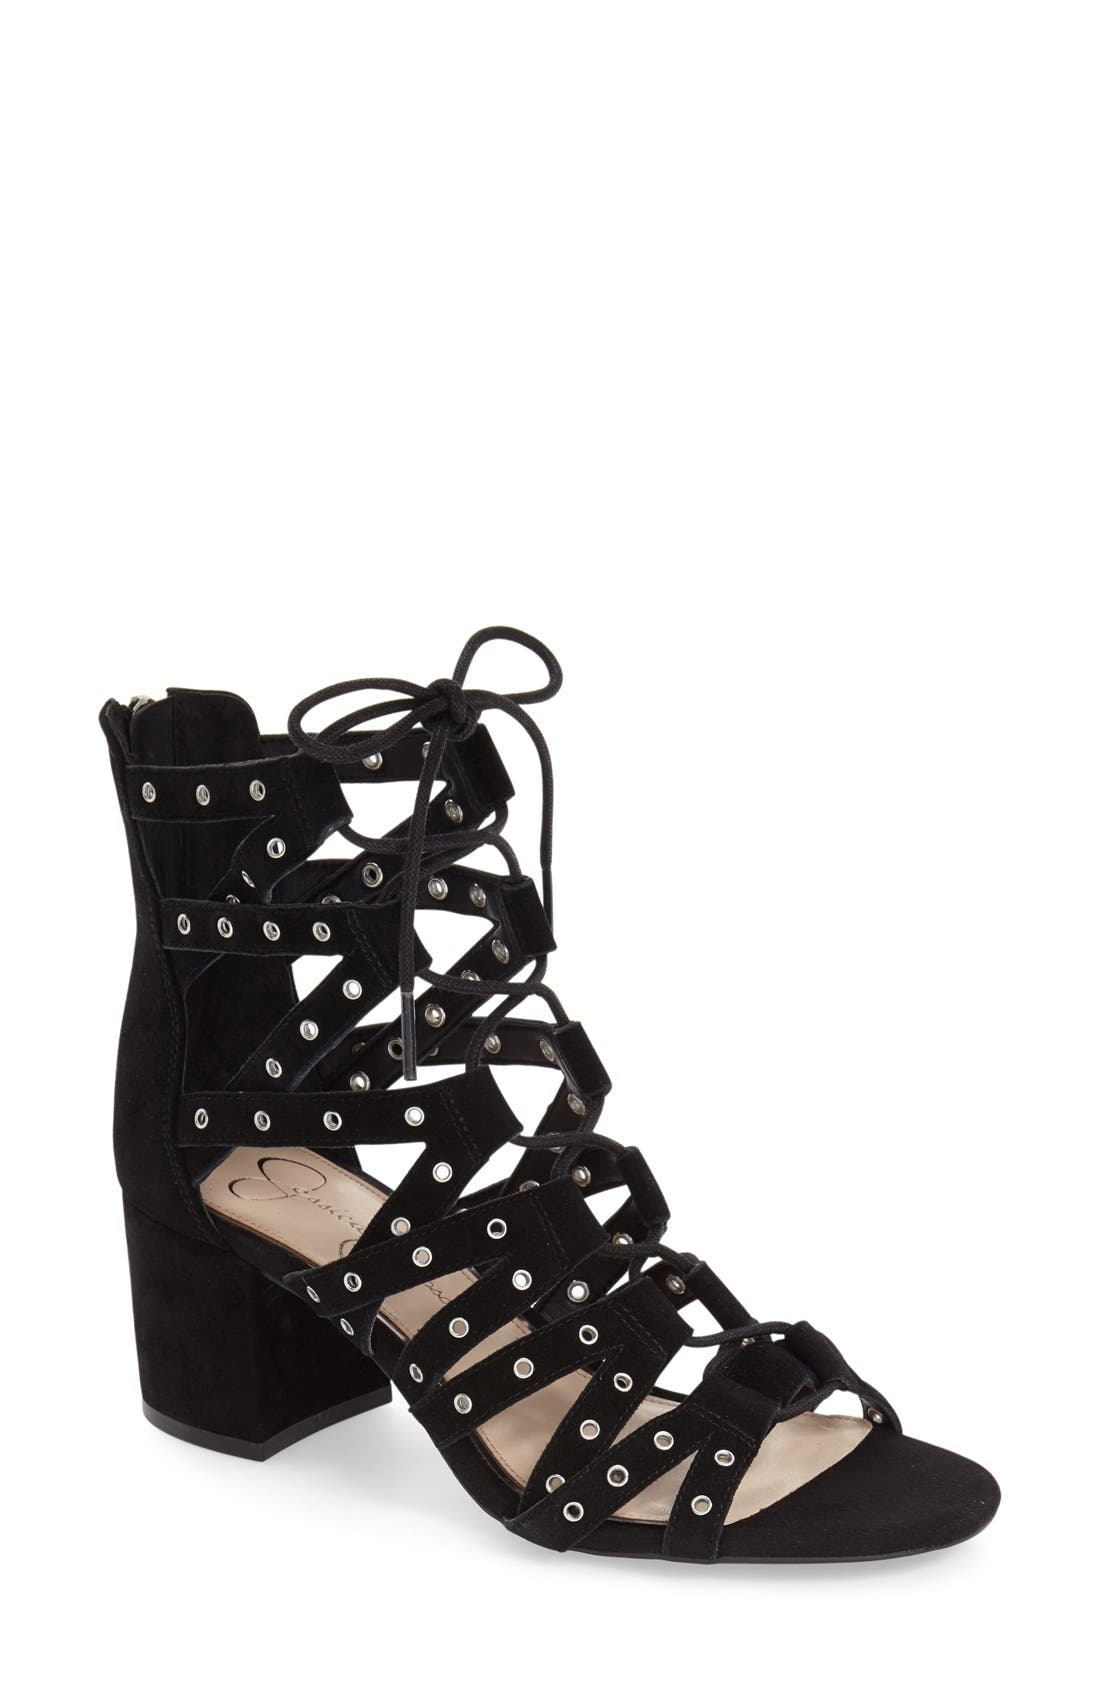 JESSICA SIMPSON Haize Cage Sandal